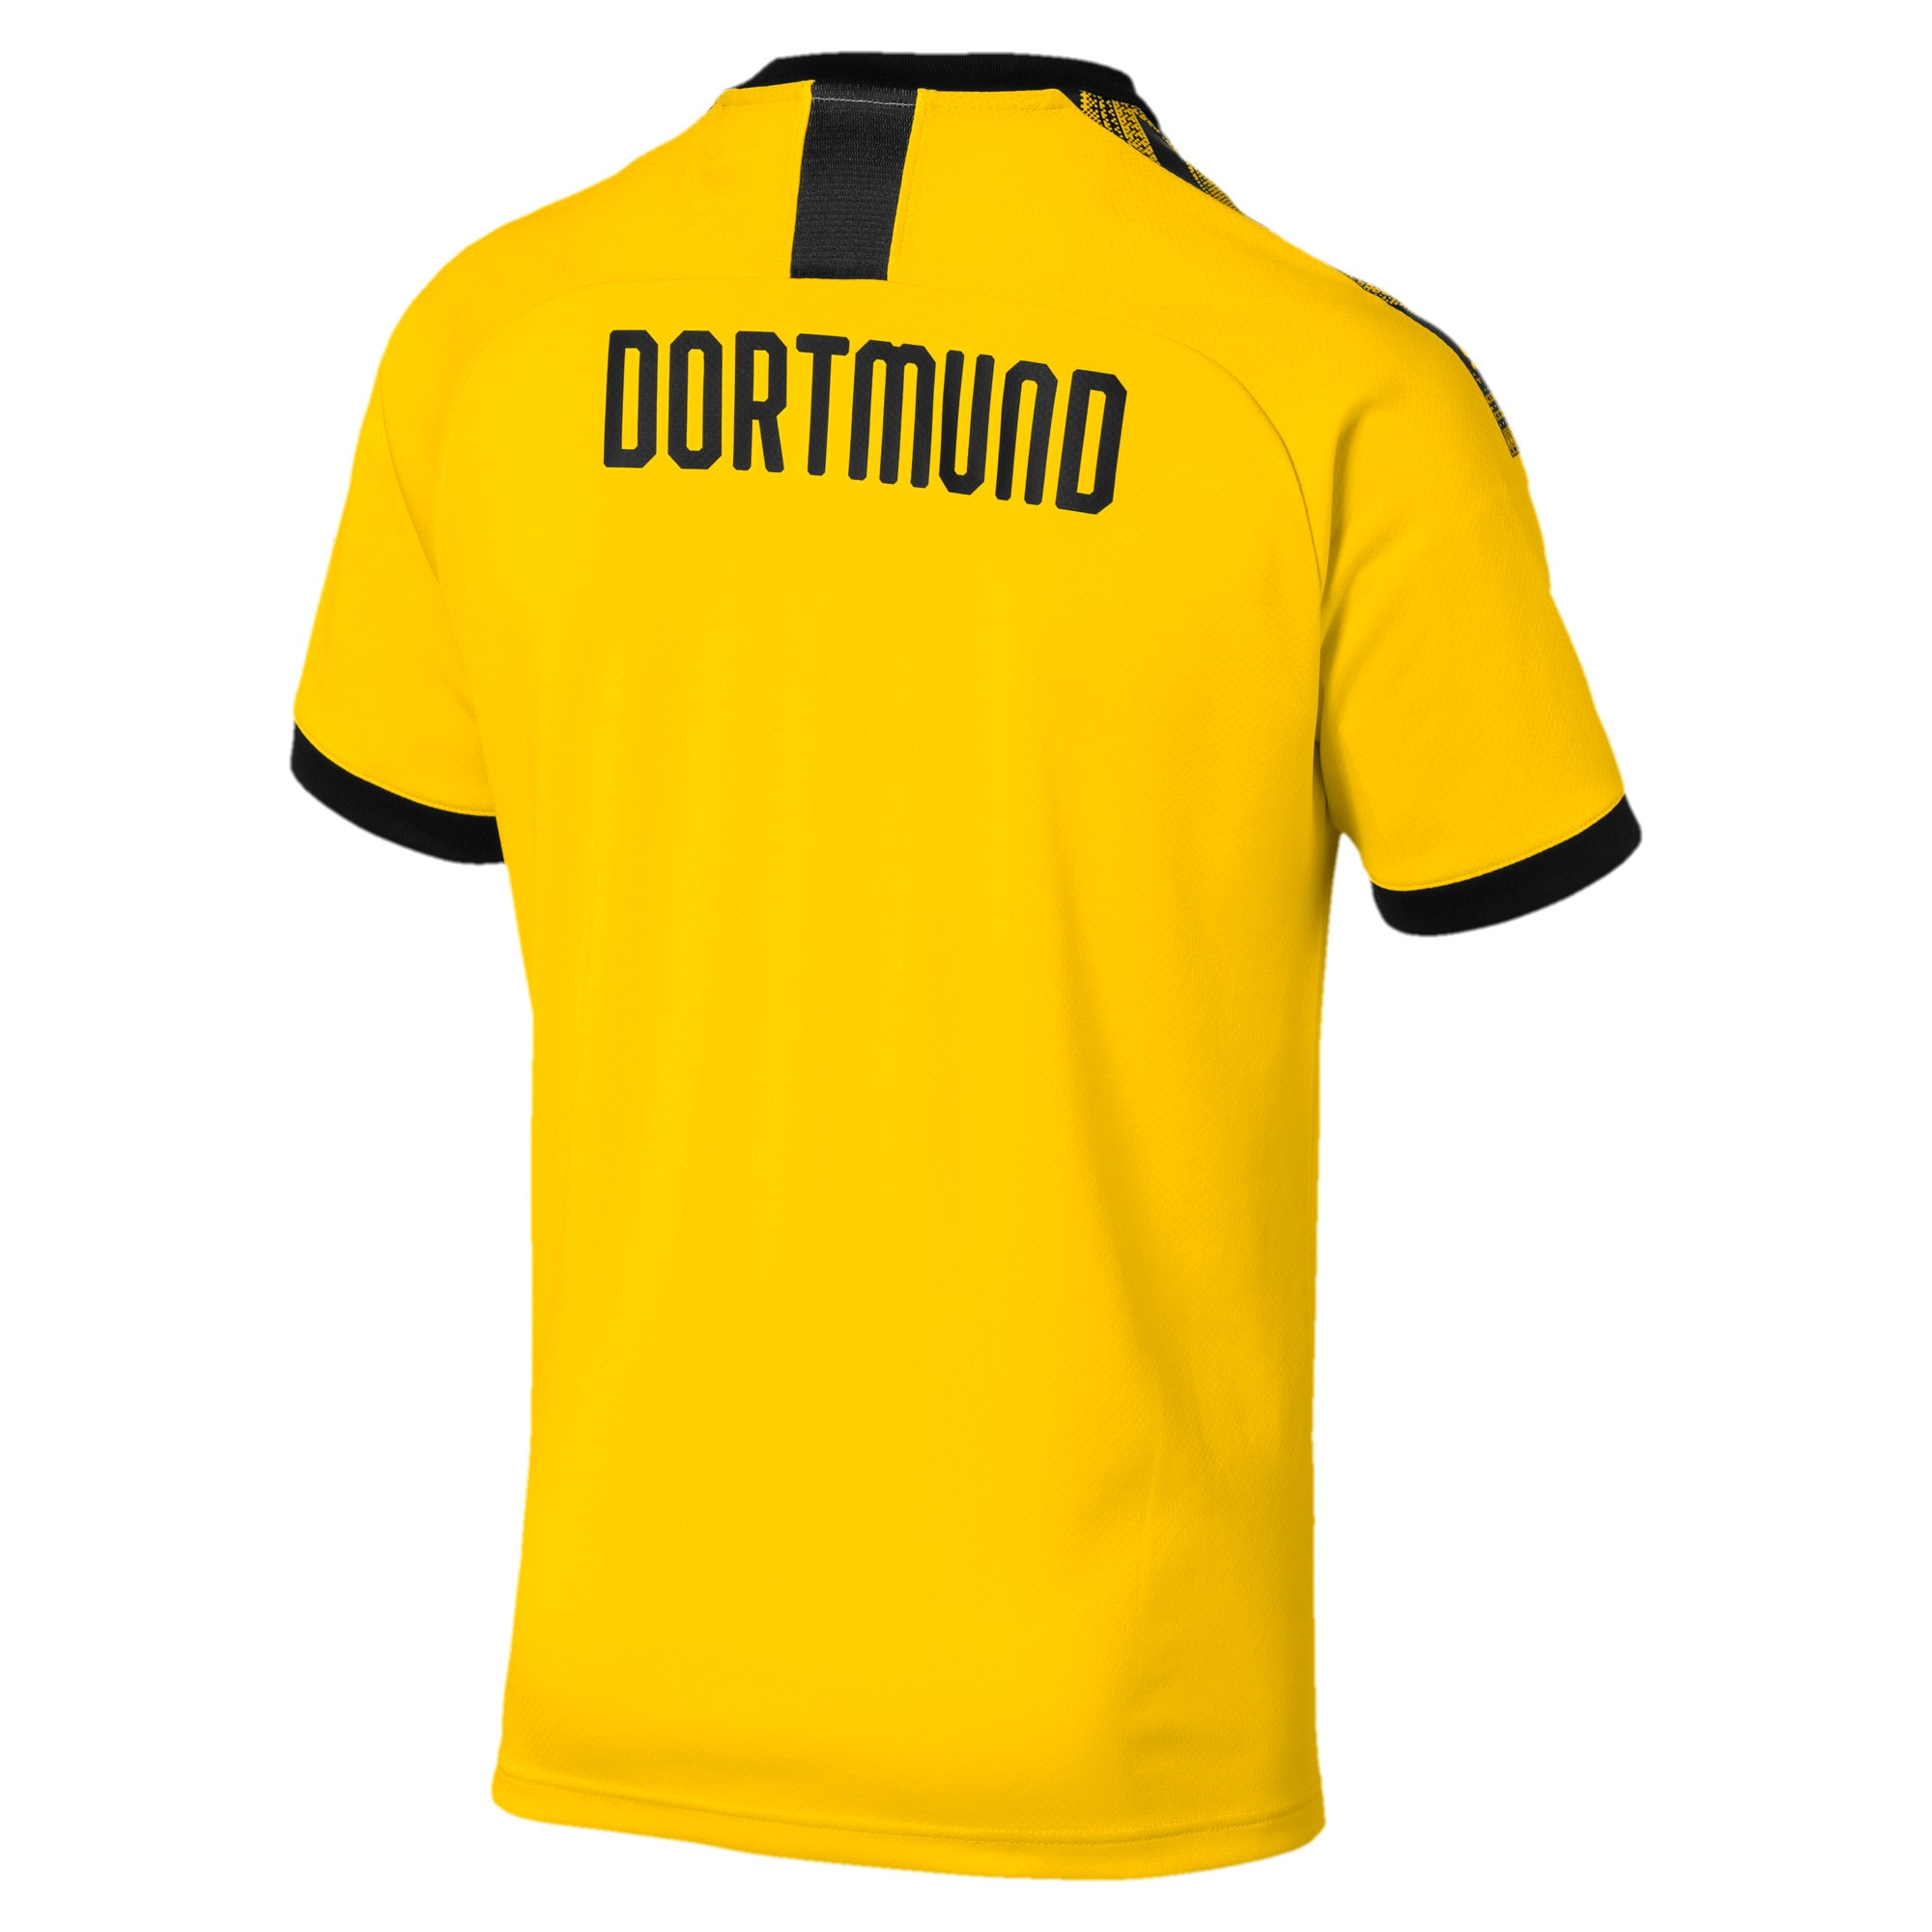 Thumbnail 2 of BVB Herren Replica Heimtrikot, Cyber Yellow-Puma Black, medium